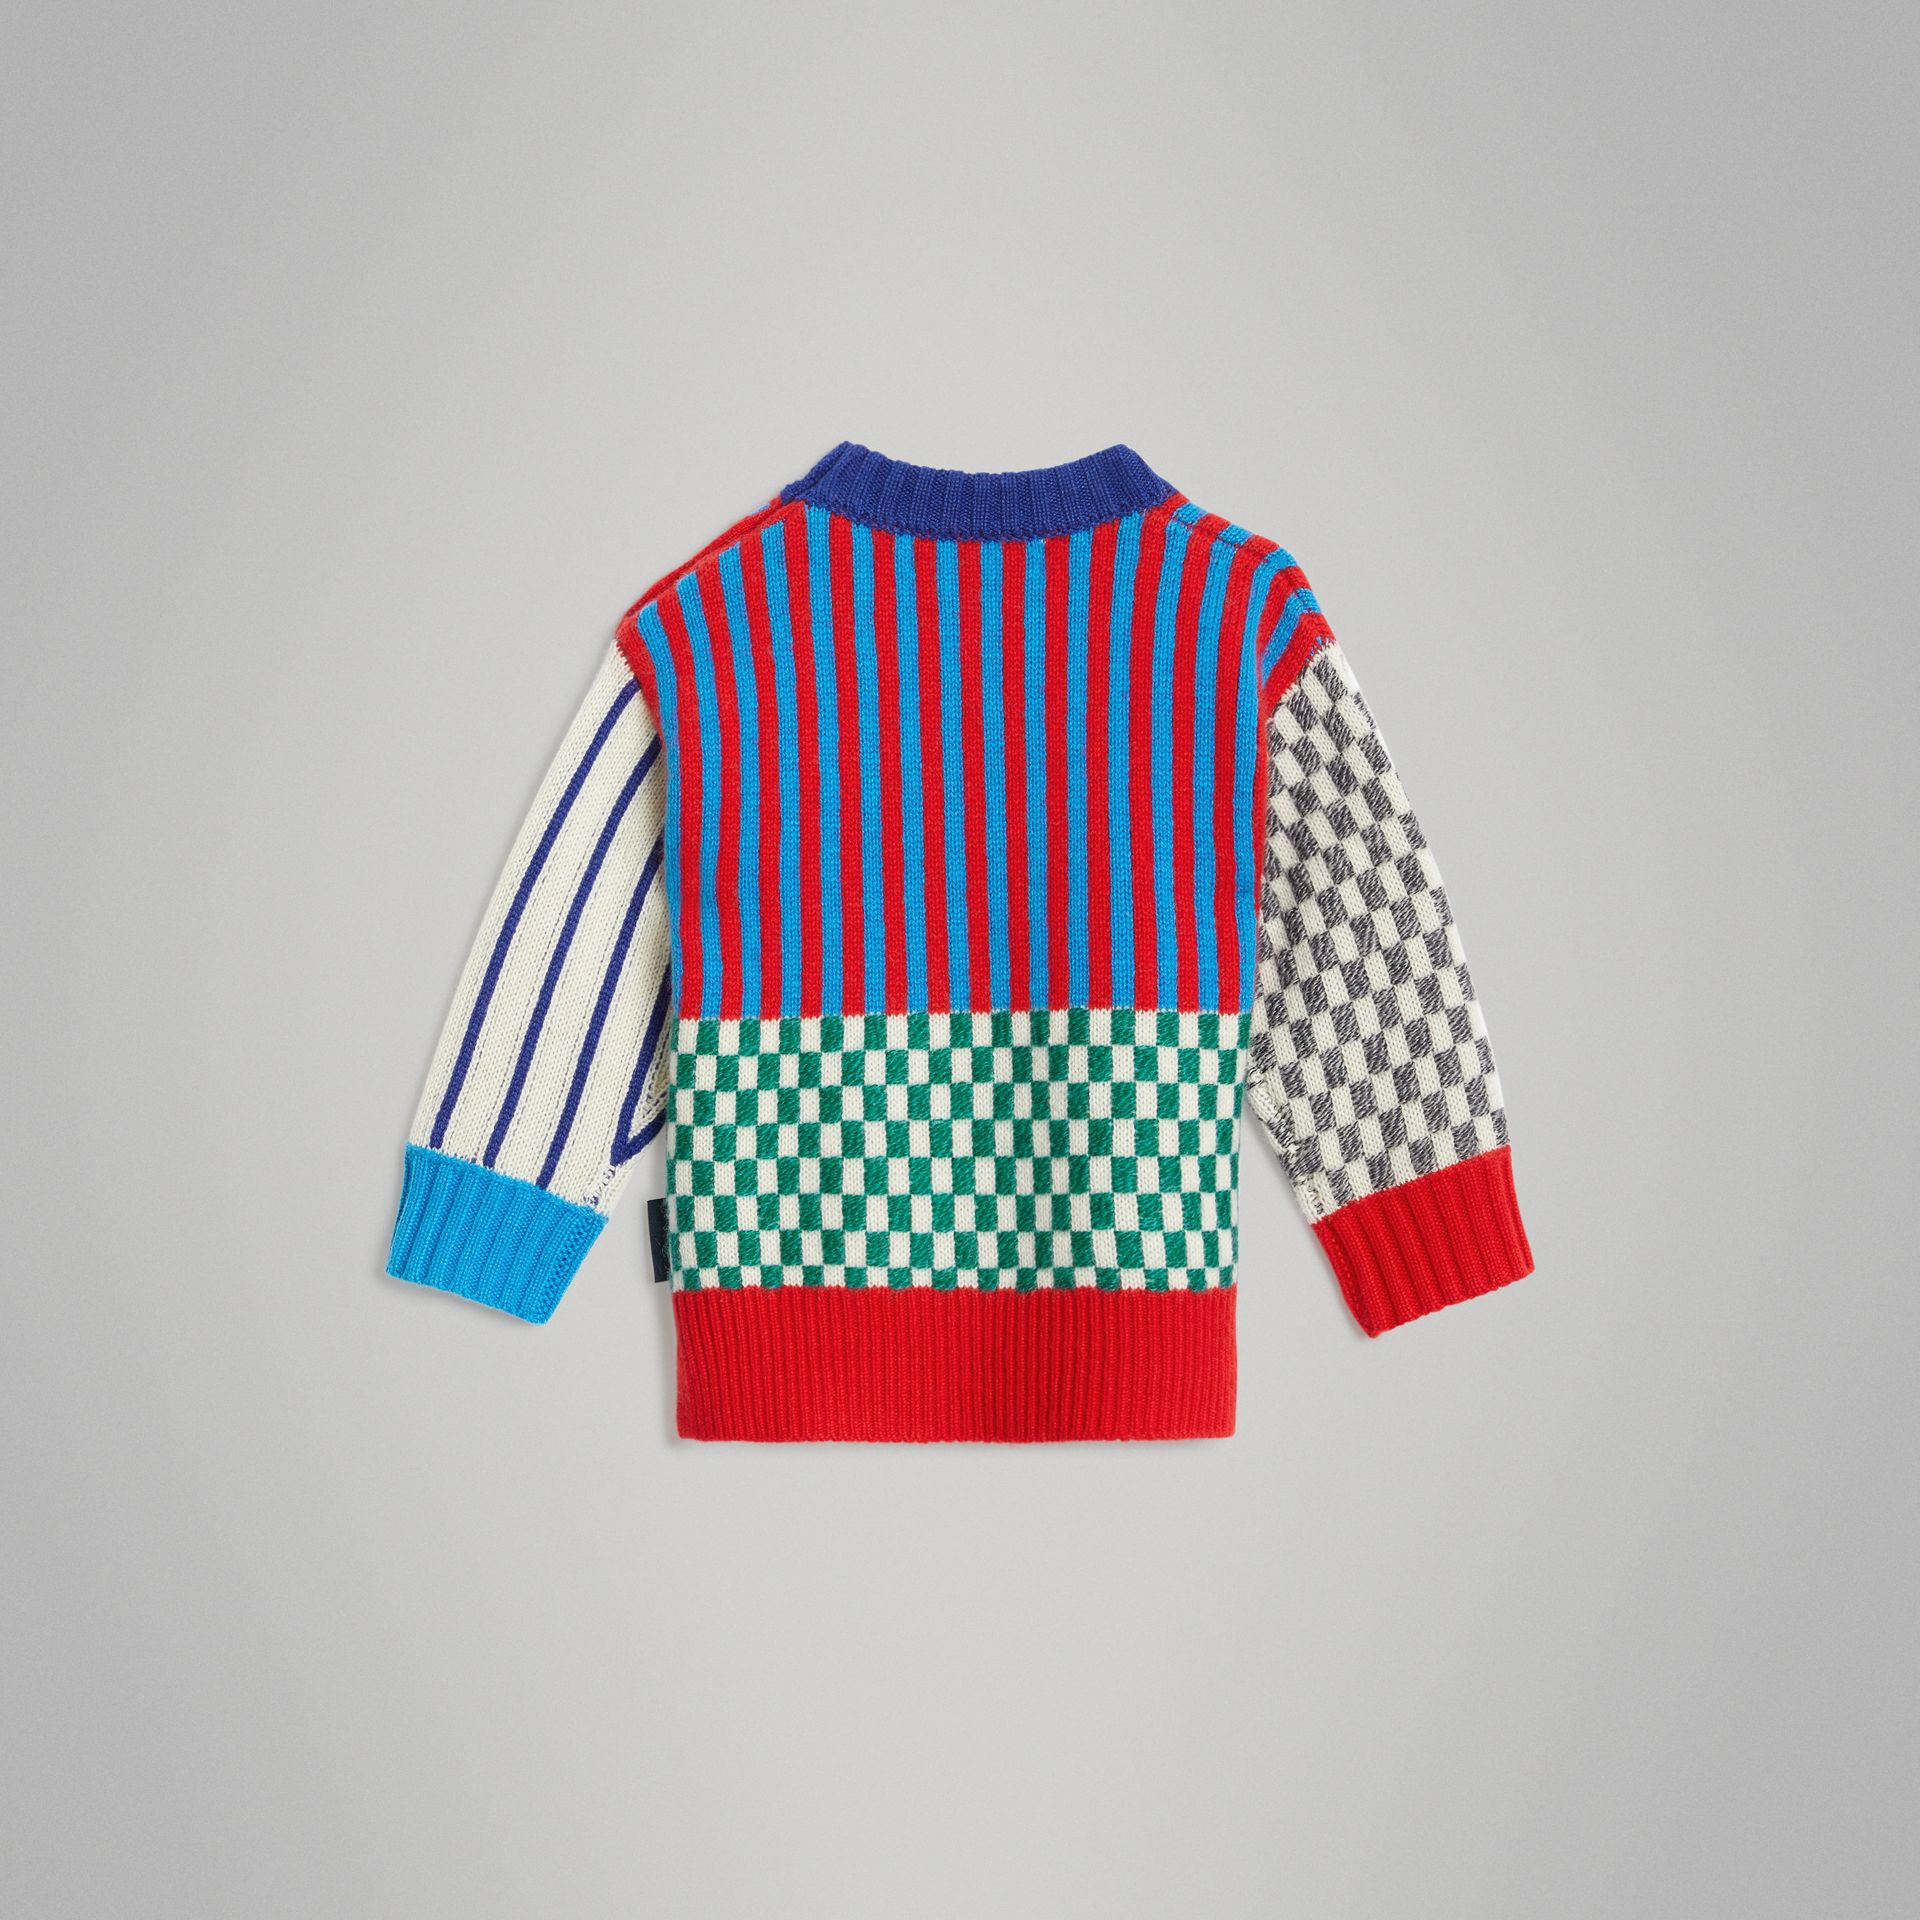 Graphic Cashmere Jacquard Sweater in Multicolour - Children | Burberry - gallery image 3